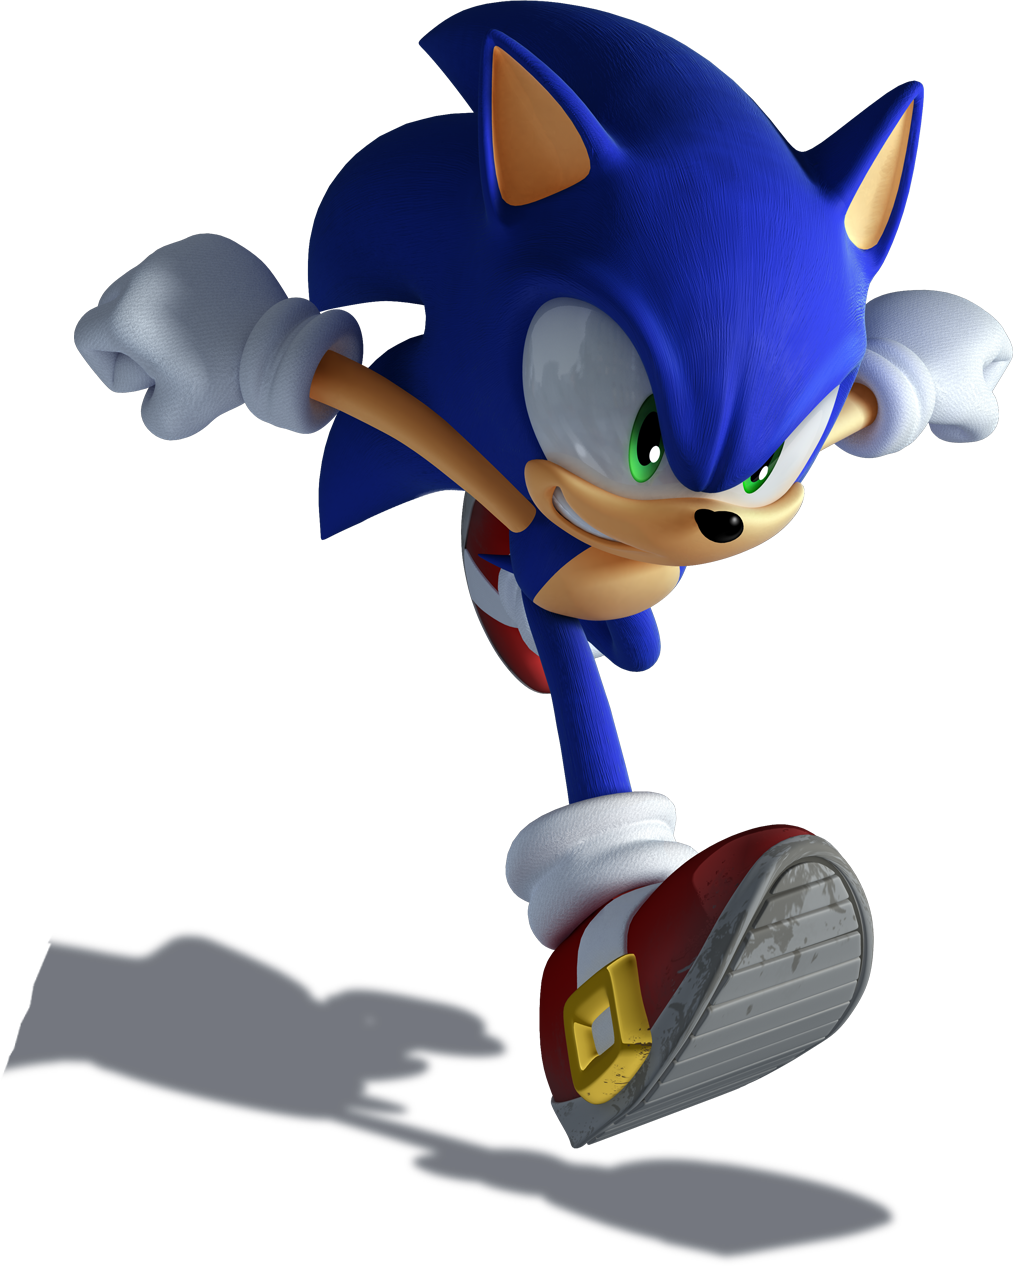 Download Sonic Png High-quality image #20650